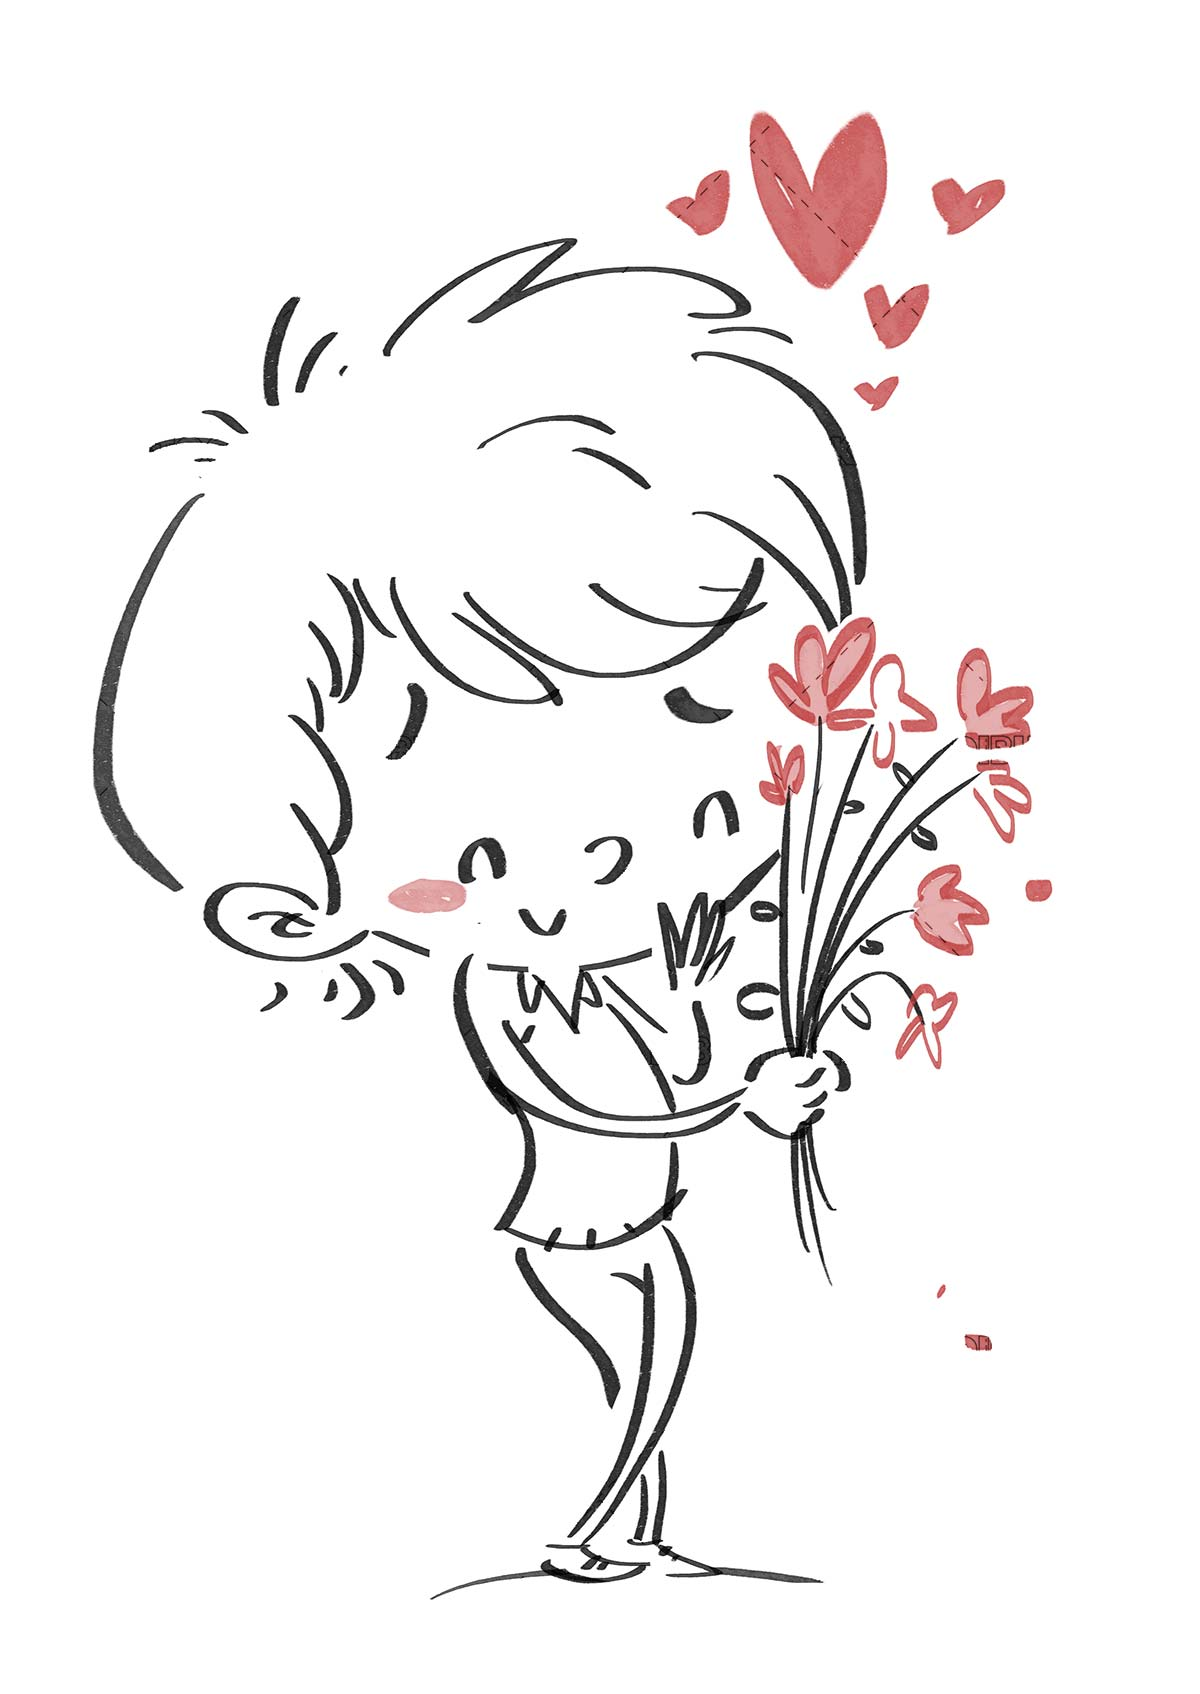 Boy in love with flowers. Black line